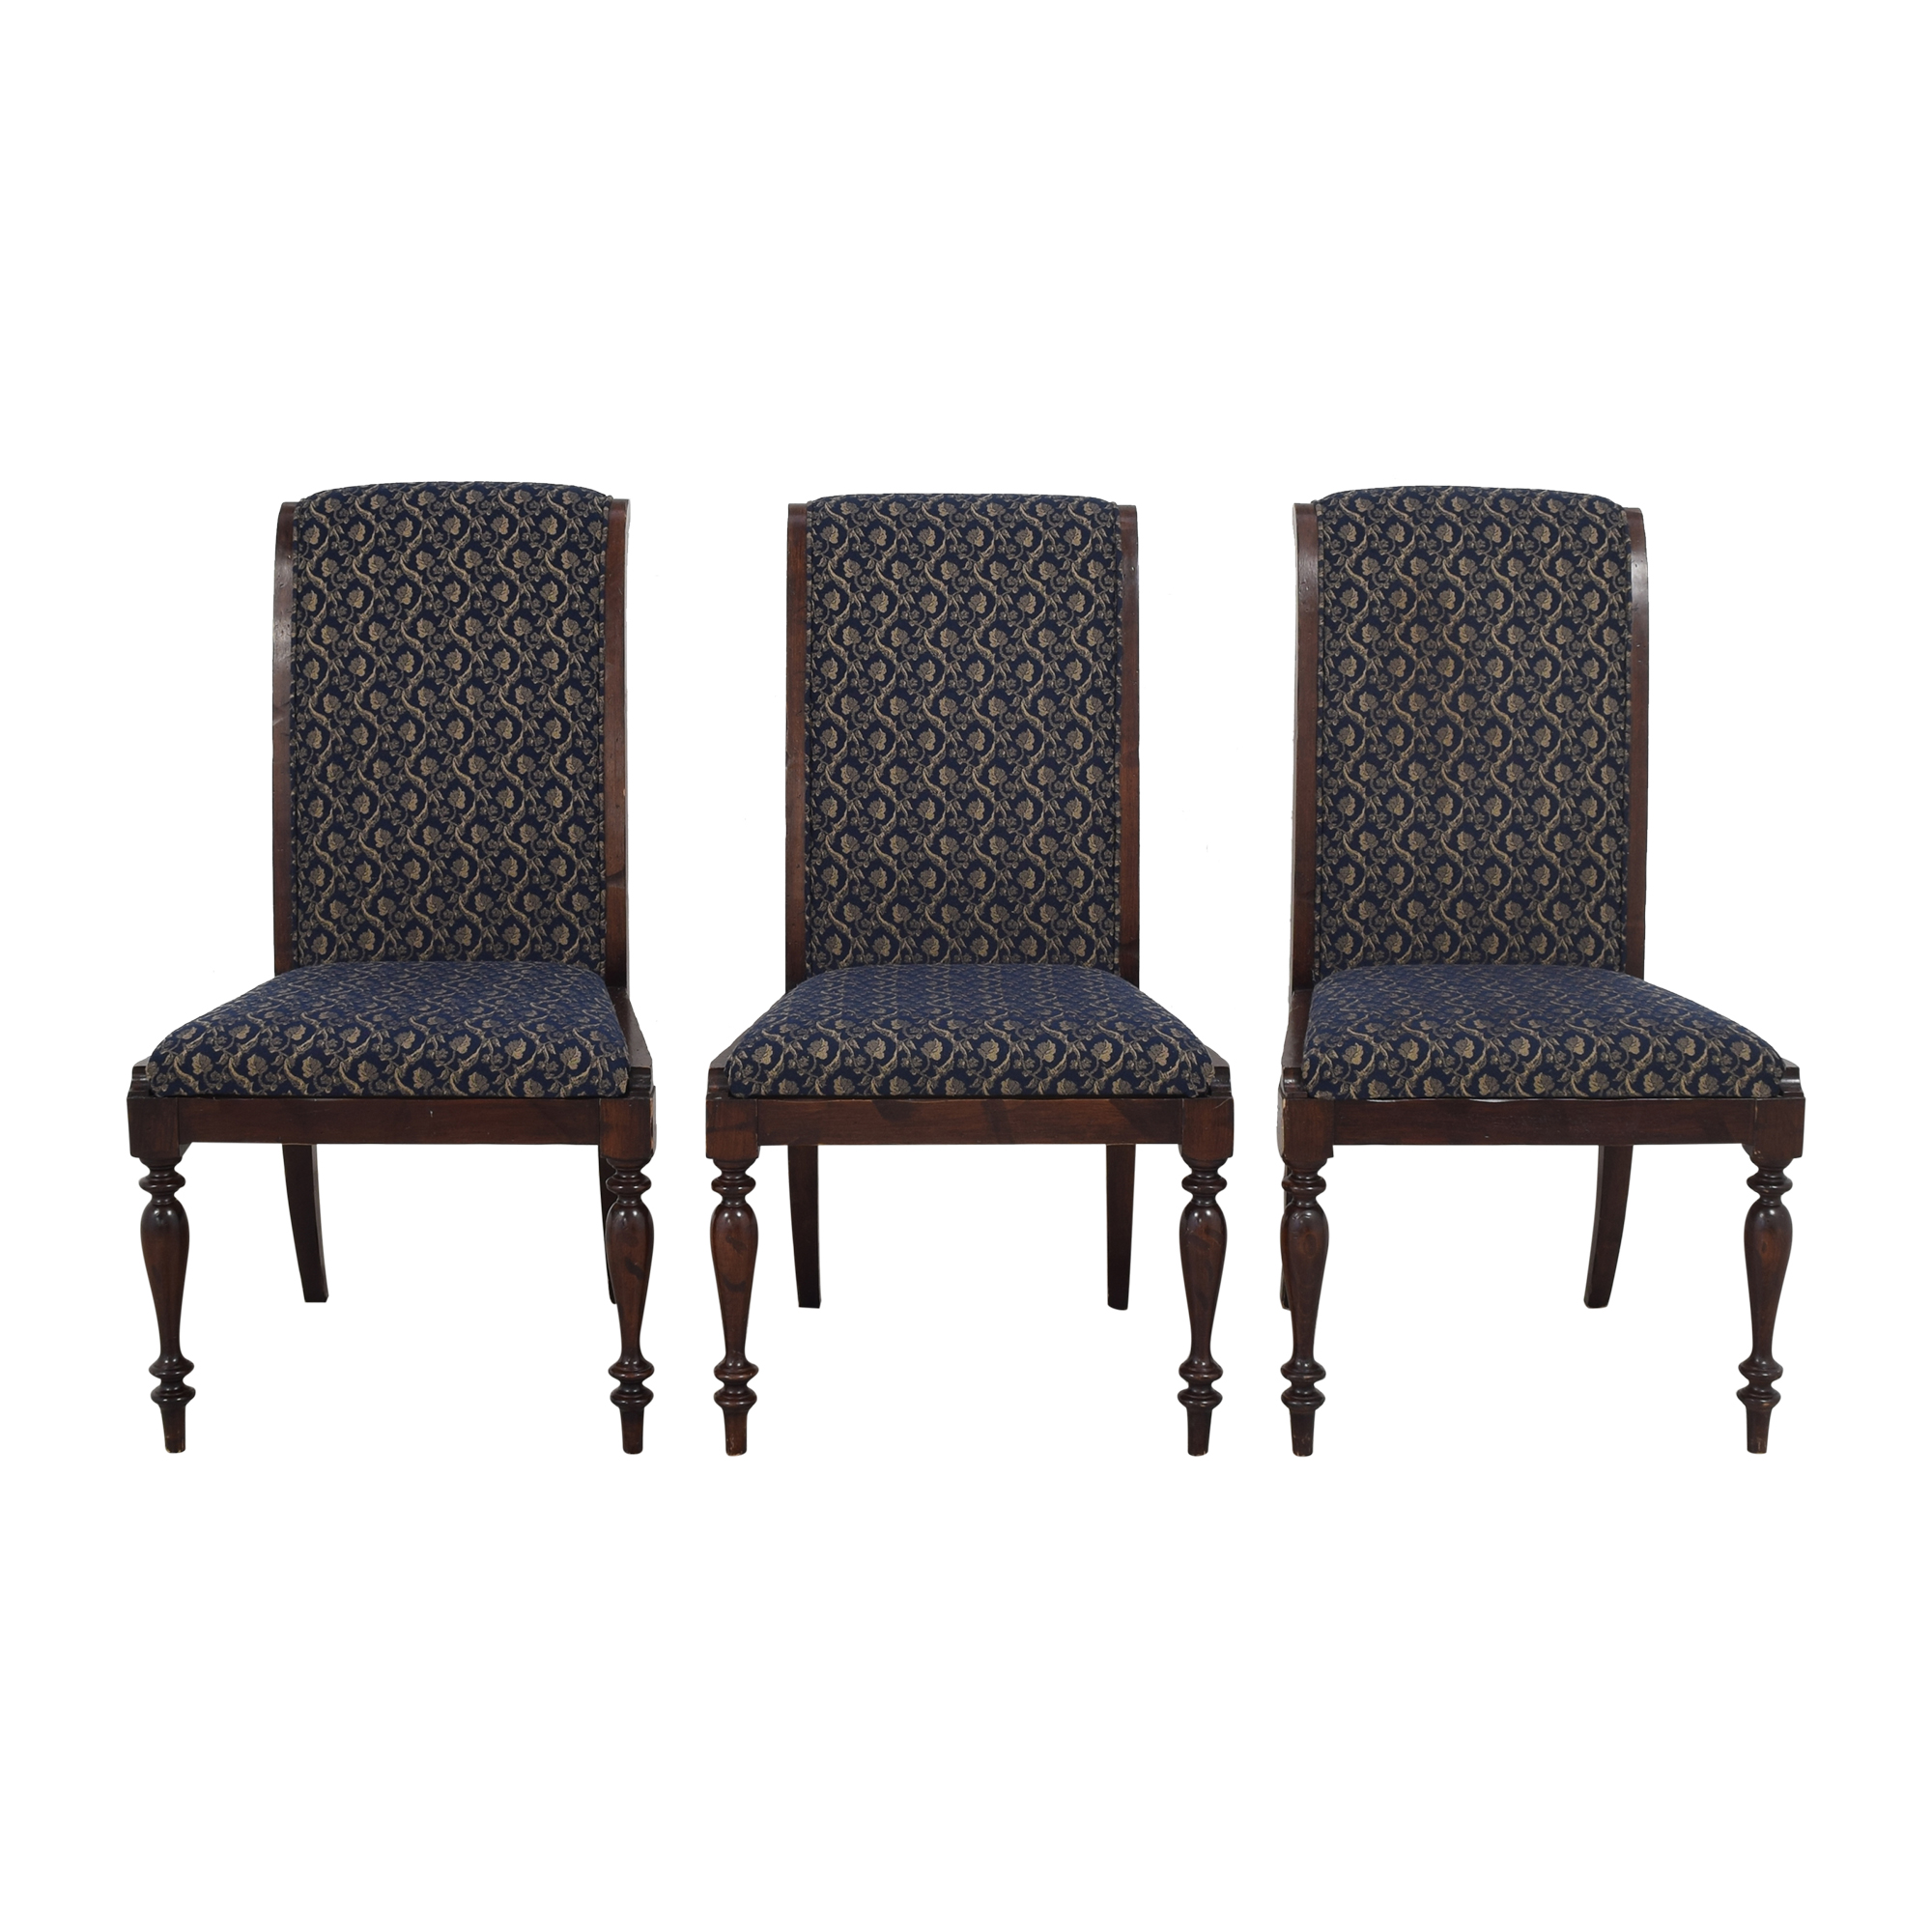 Sacchetto Fratelli Upholstered High Back Dining Chairs Sacchetto Fratelli